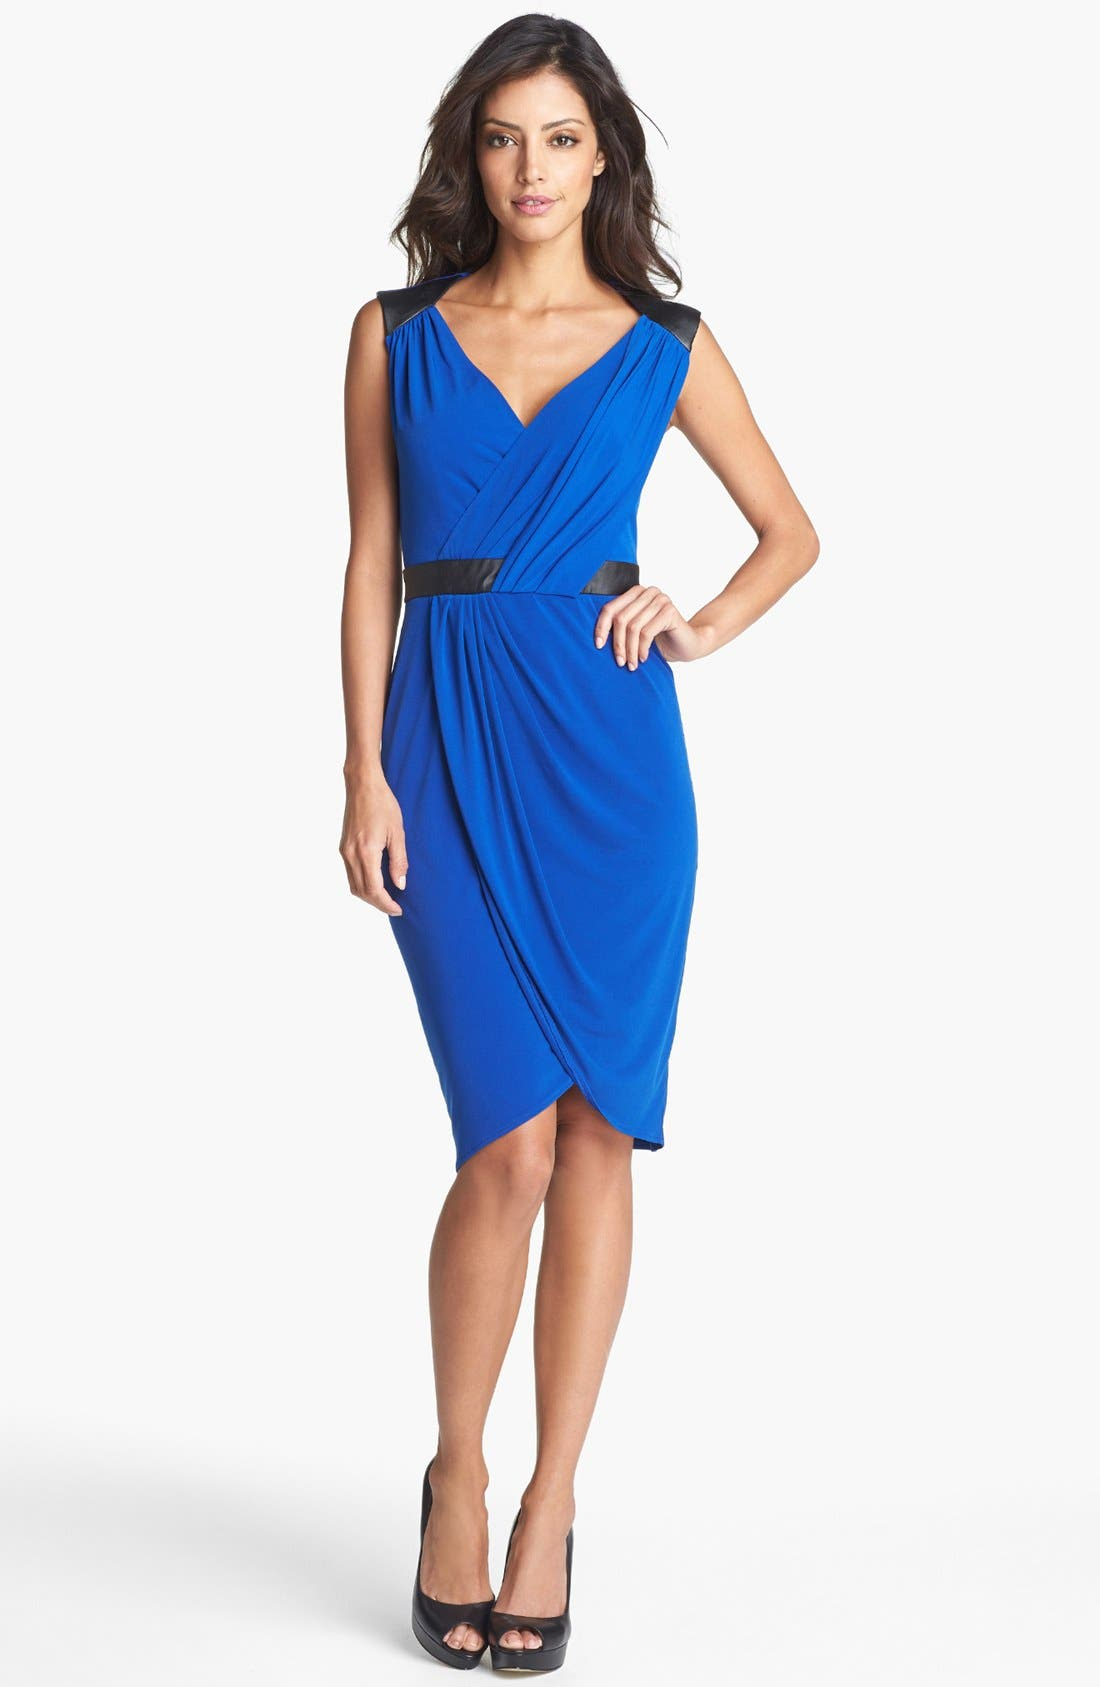 Alternate Image 1 Selected - Ivy & Blu Faux Leather Trim Dress